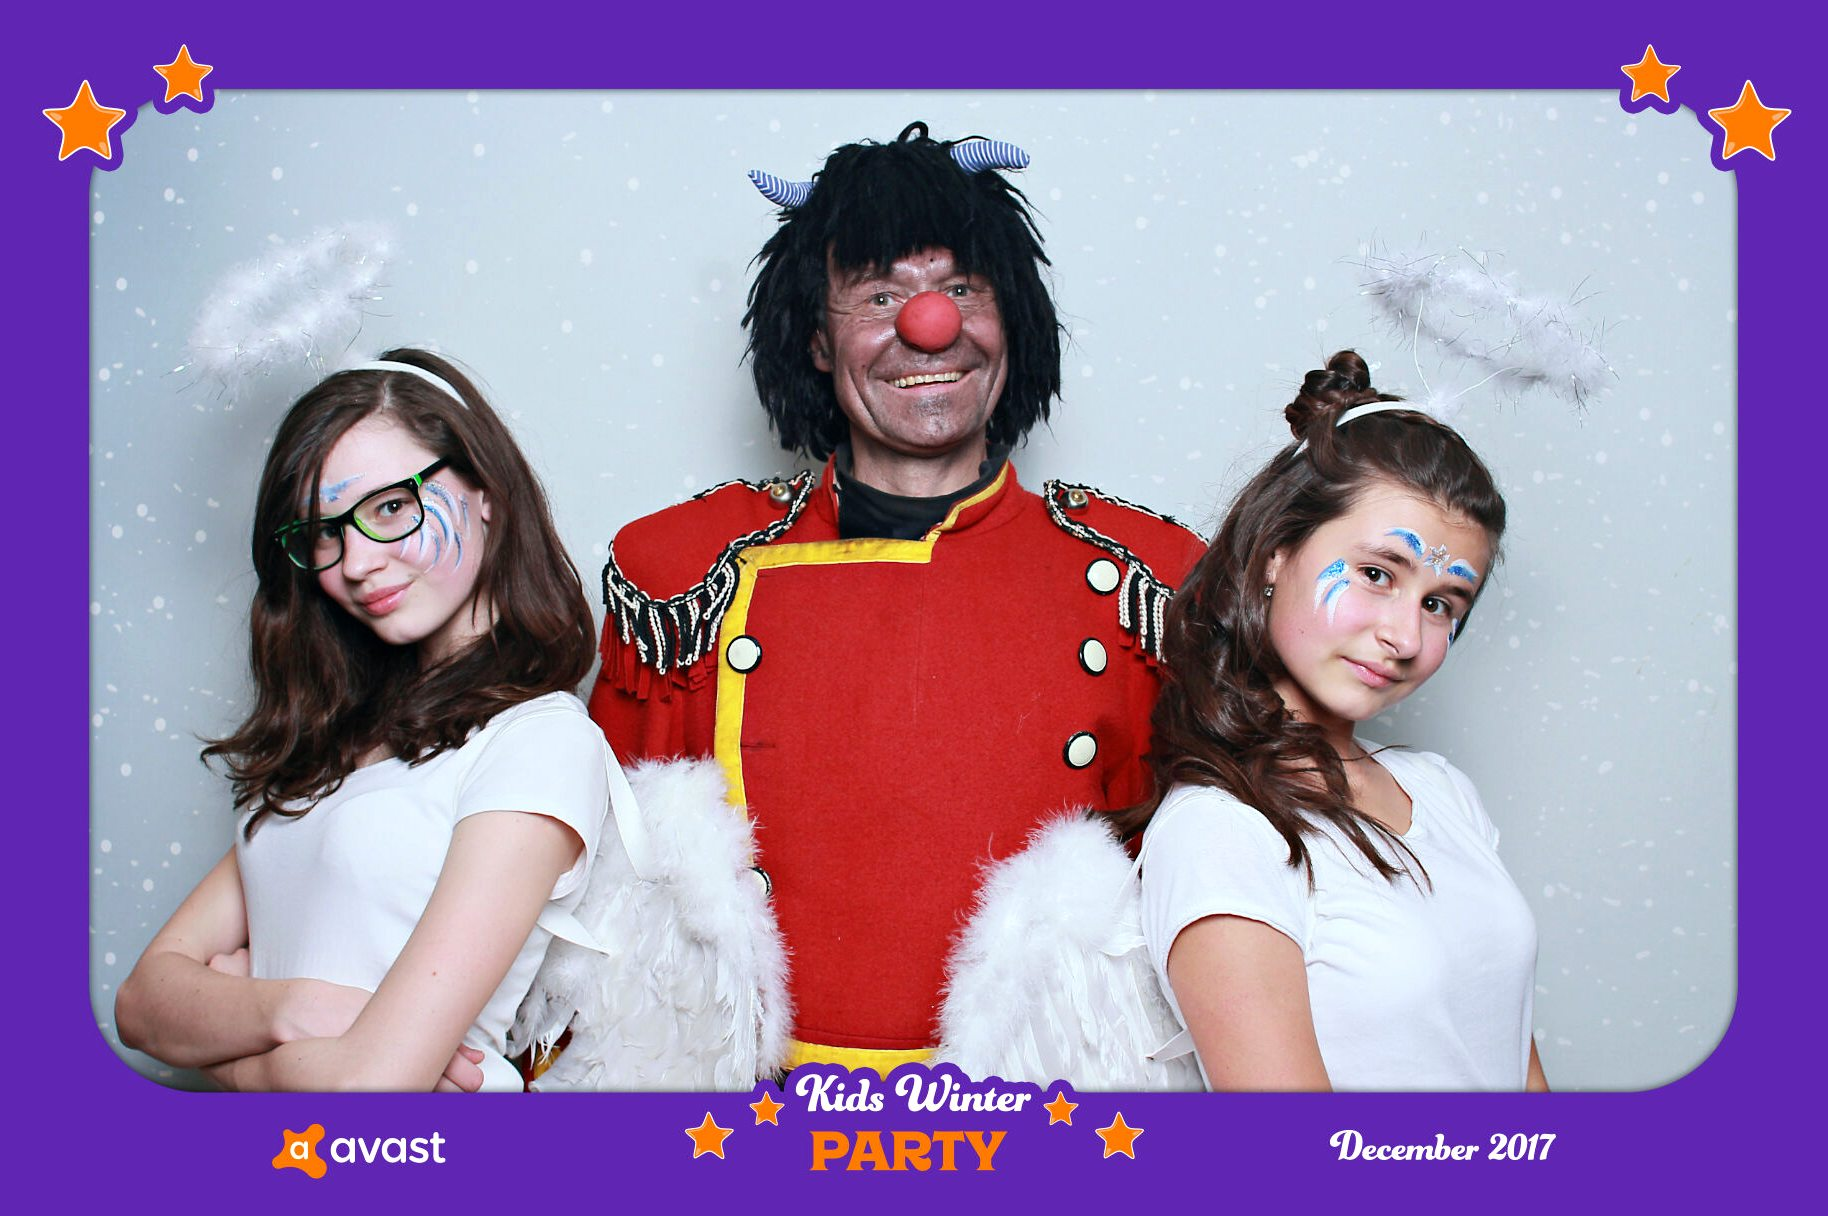 fotokoutek-avast-kids-winter-party-9-12-2017-358683